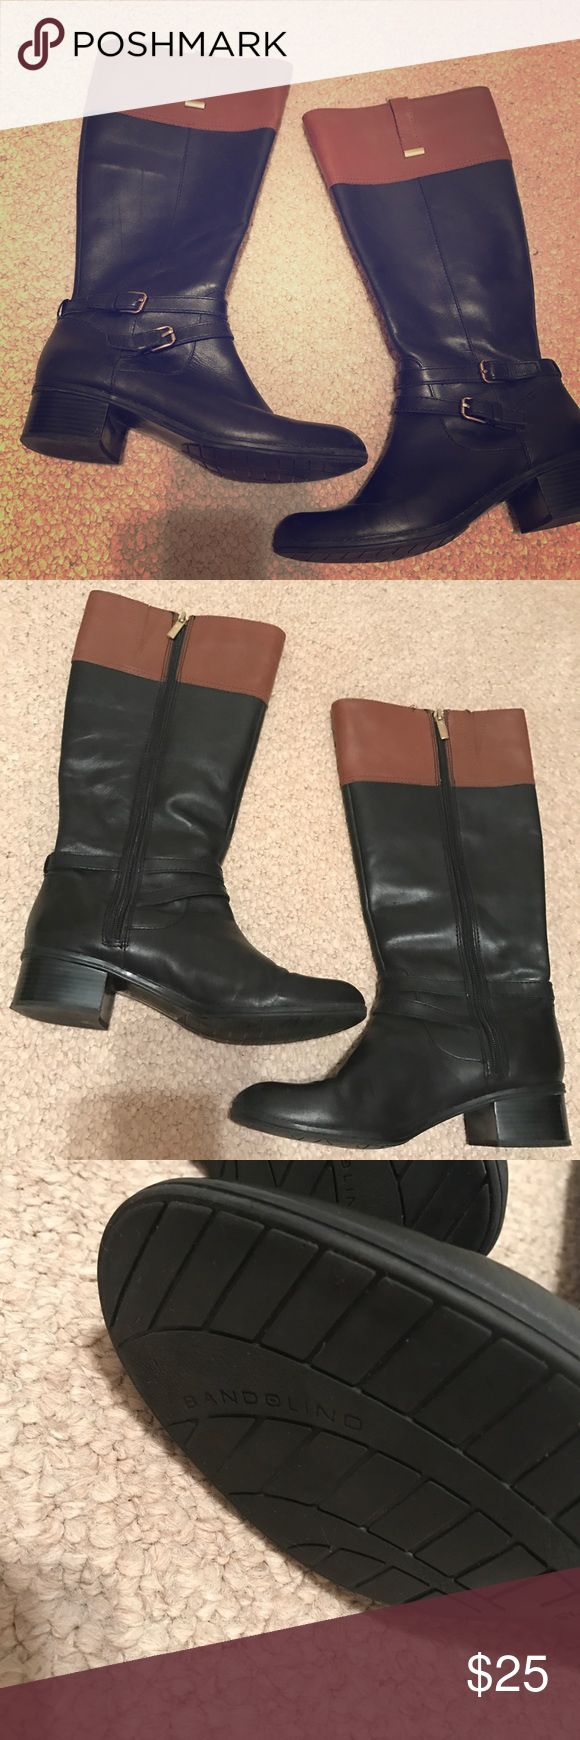 Bandolino two toned tall boots These were a pair of my favorites! The two tone is super classy and you can wear with a lot of outfits. Looks great with jeans or leggings. Slight wear but nothing so significant to take a picture of! Probably wore like 10 times Bandolino Shoes